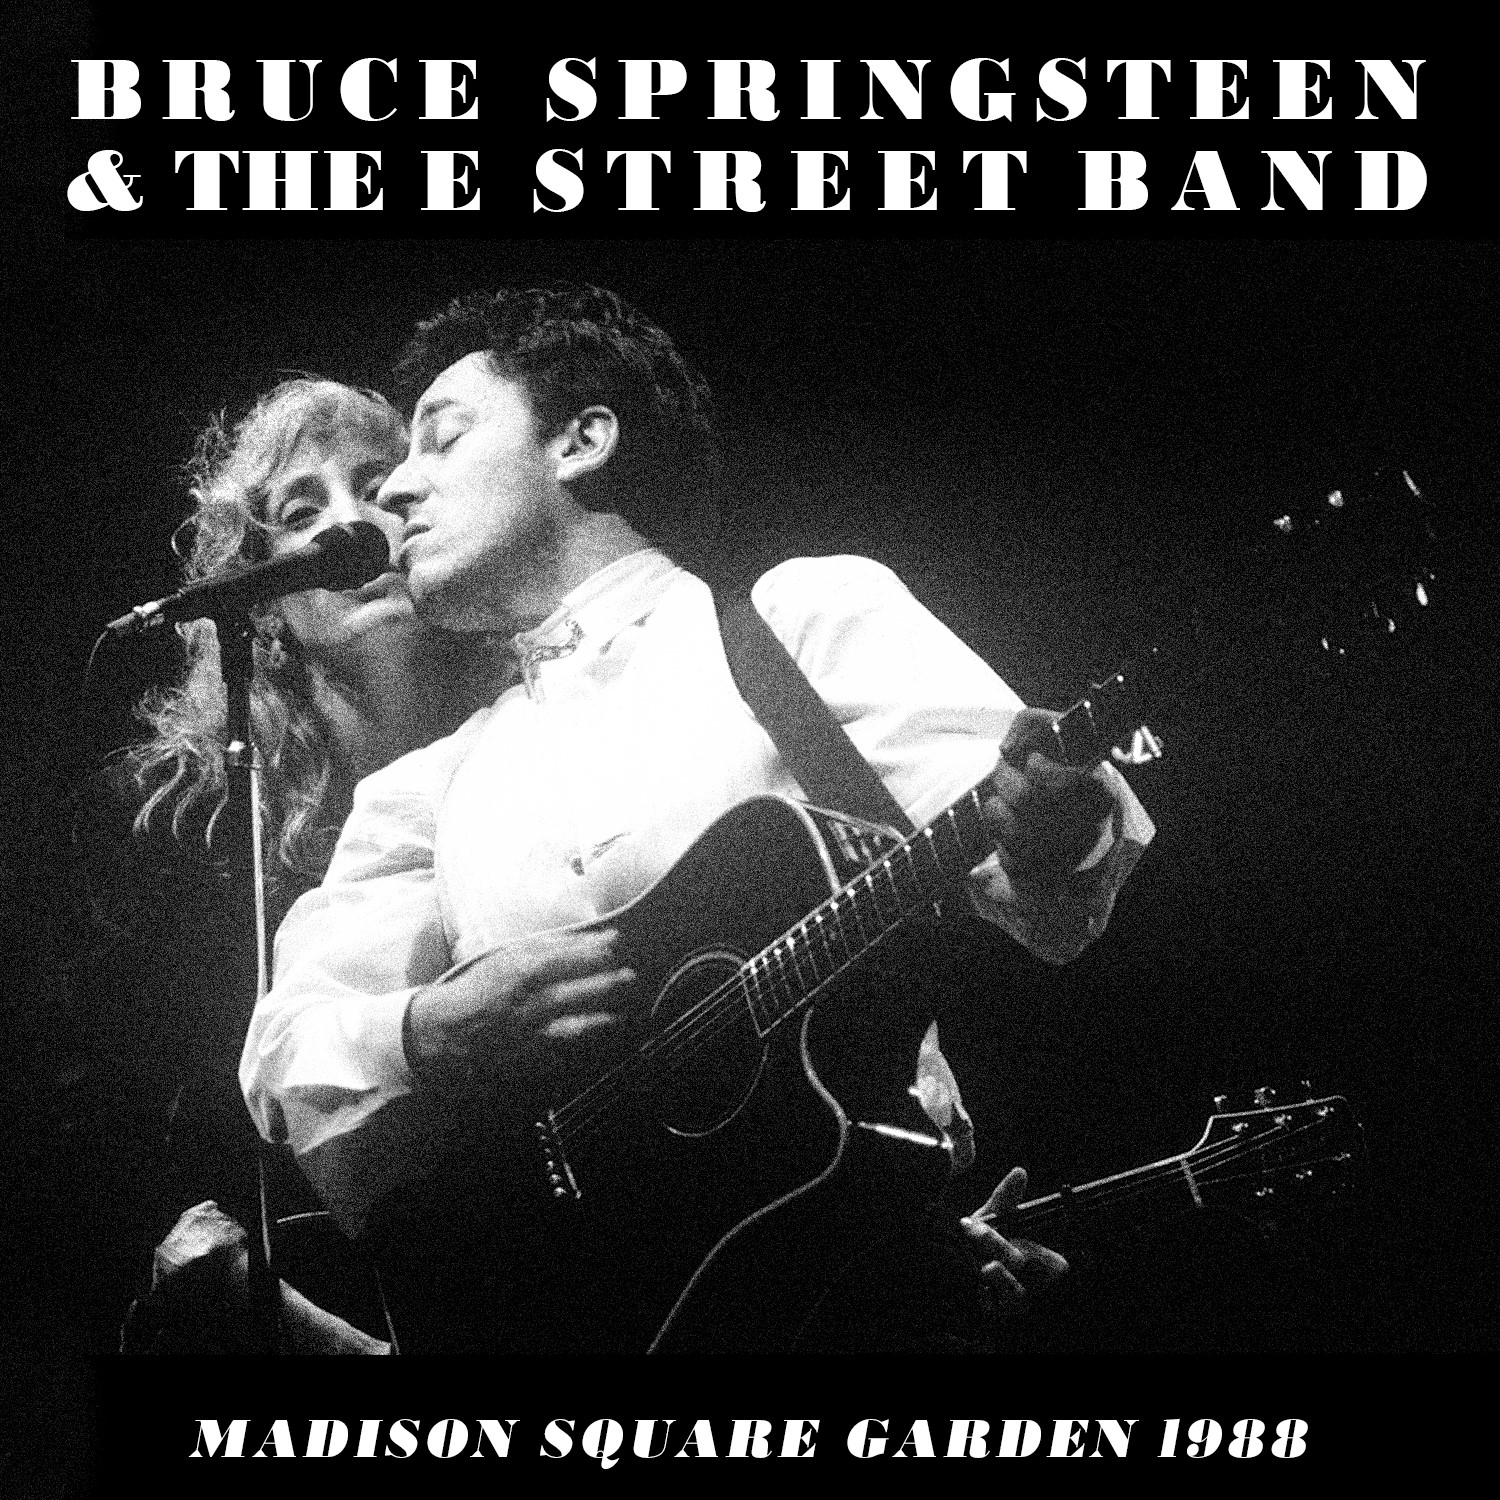 Bruce Springsteen Live Concert Cds Downloads